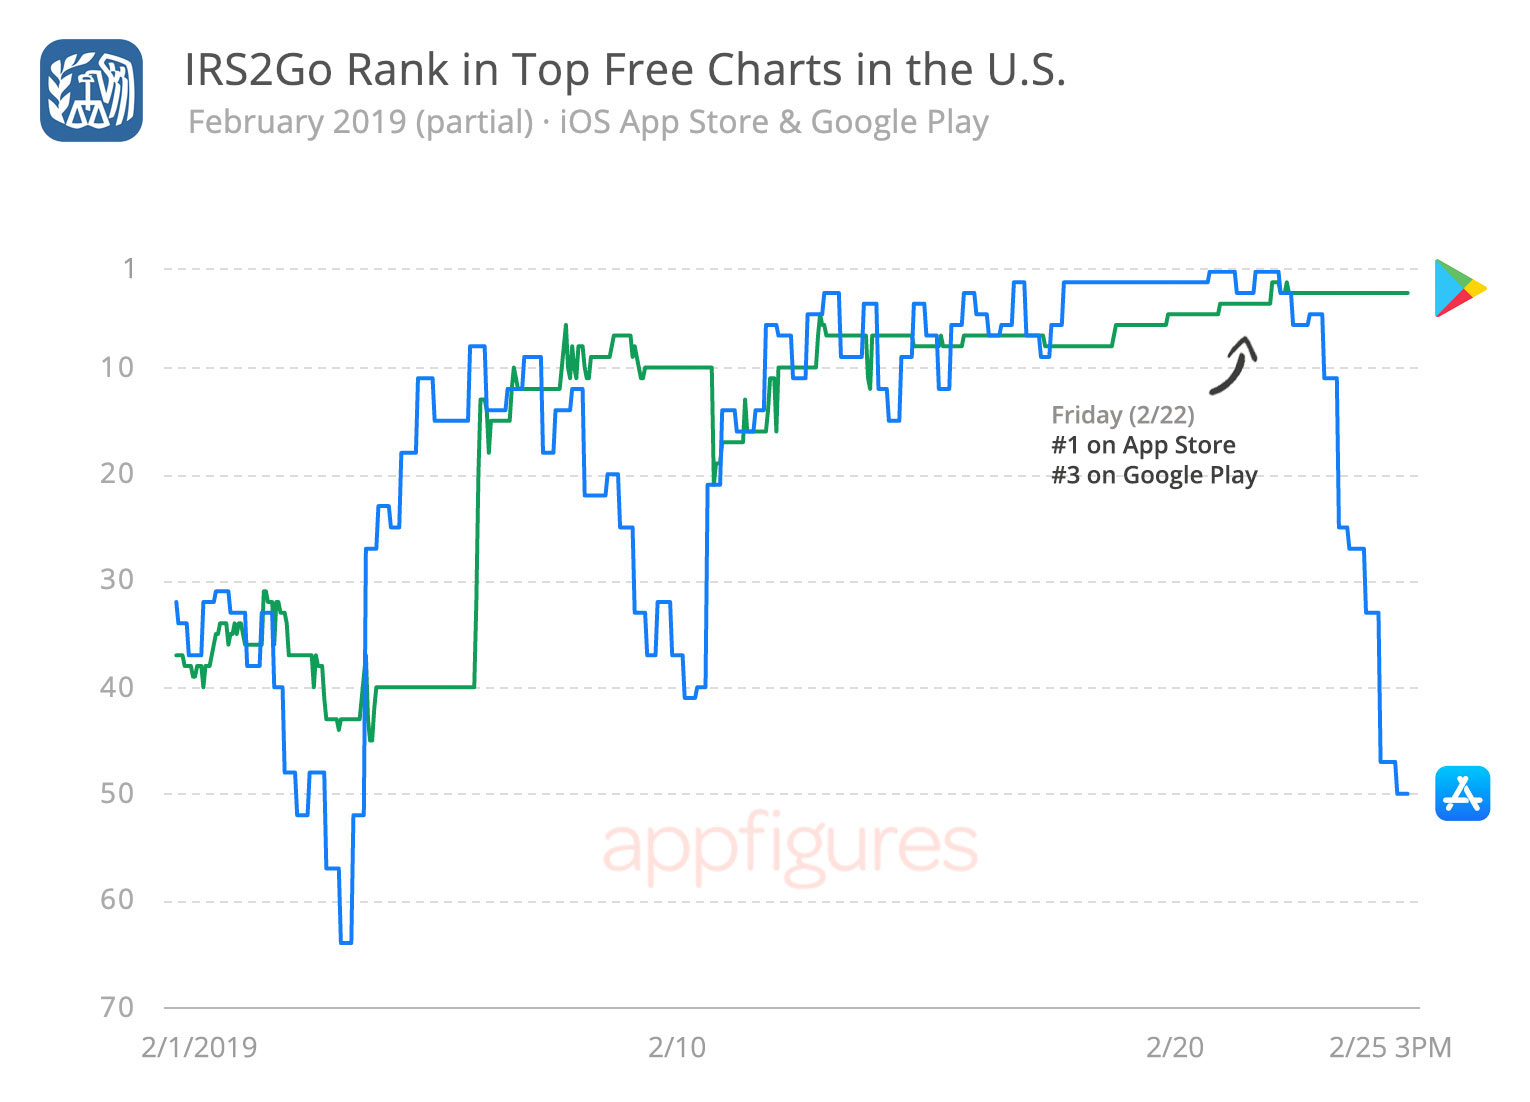 IRS2Go Ranks on the iOS App Store and Google Play by Appfigures